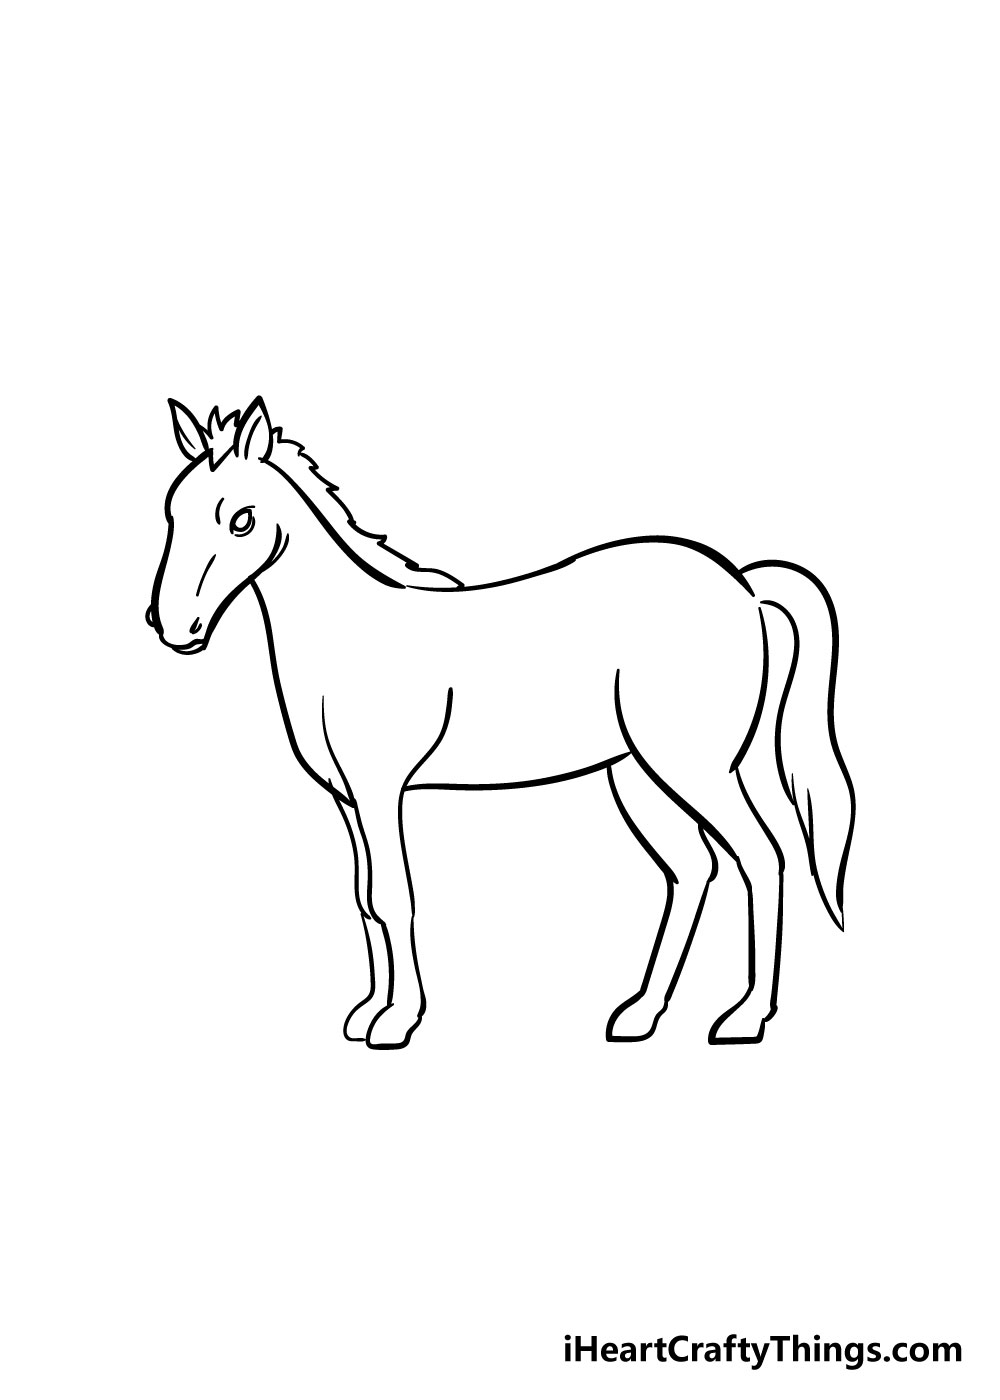 horse drawing step 7